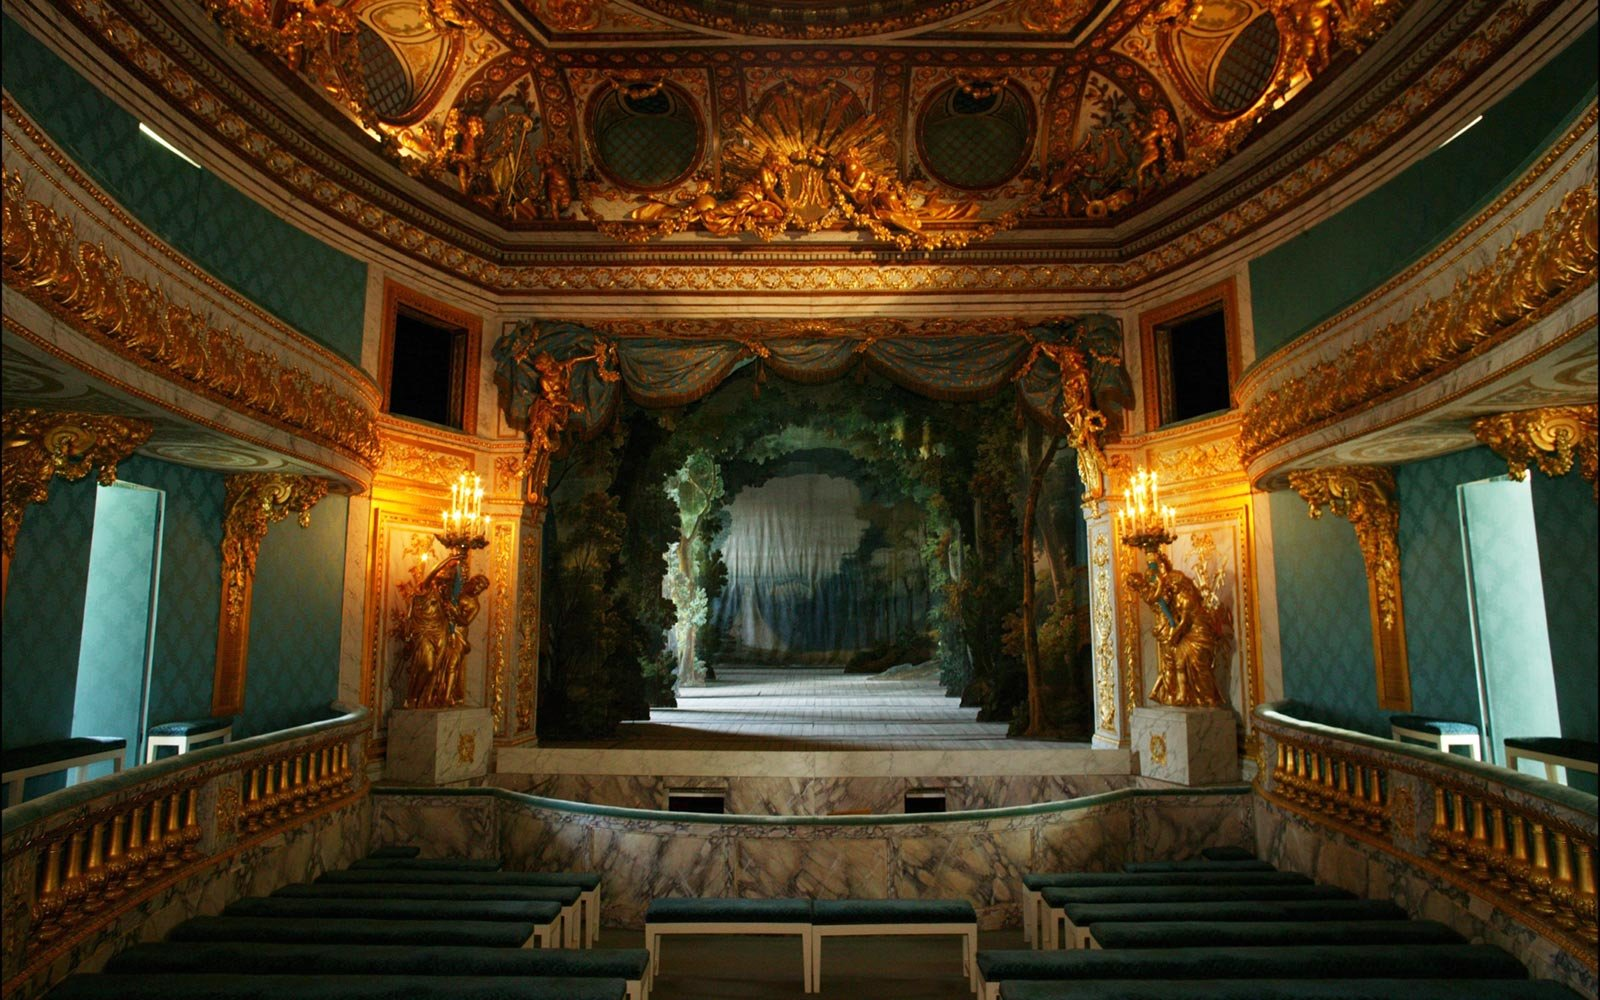 The Queen's Theatre, Versailles, France